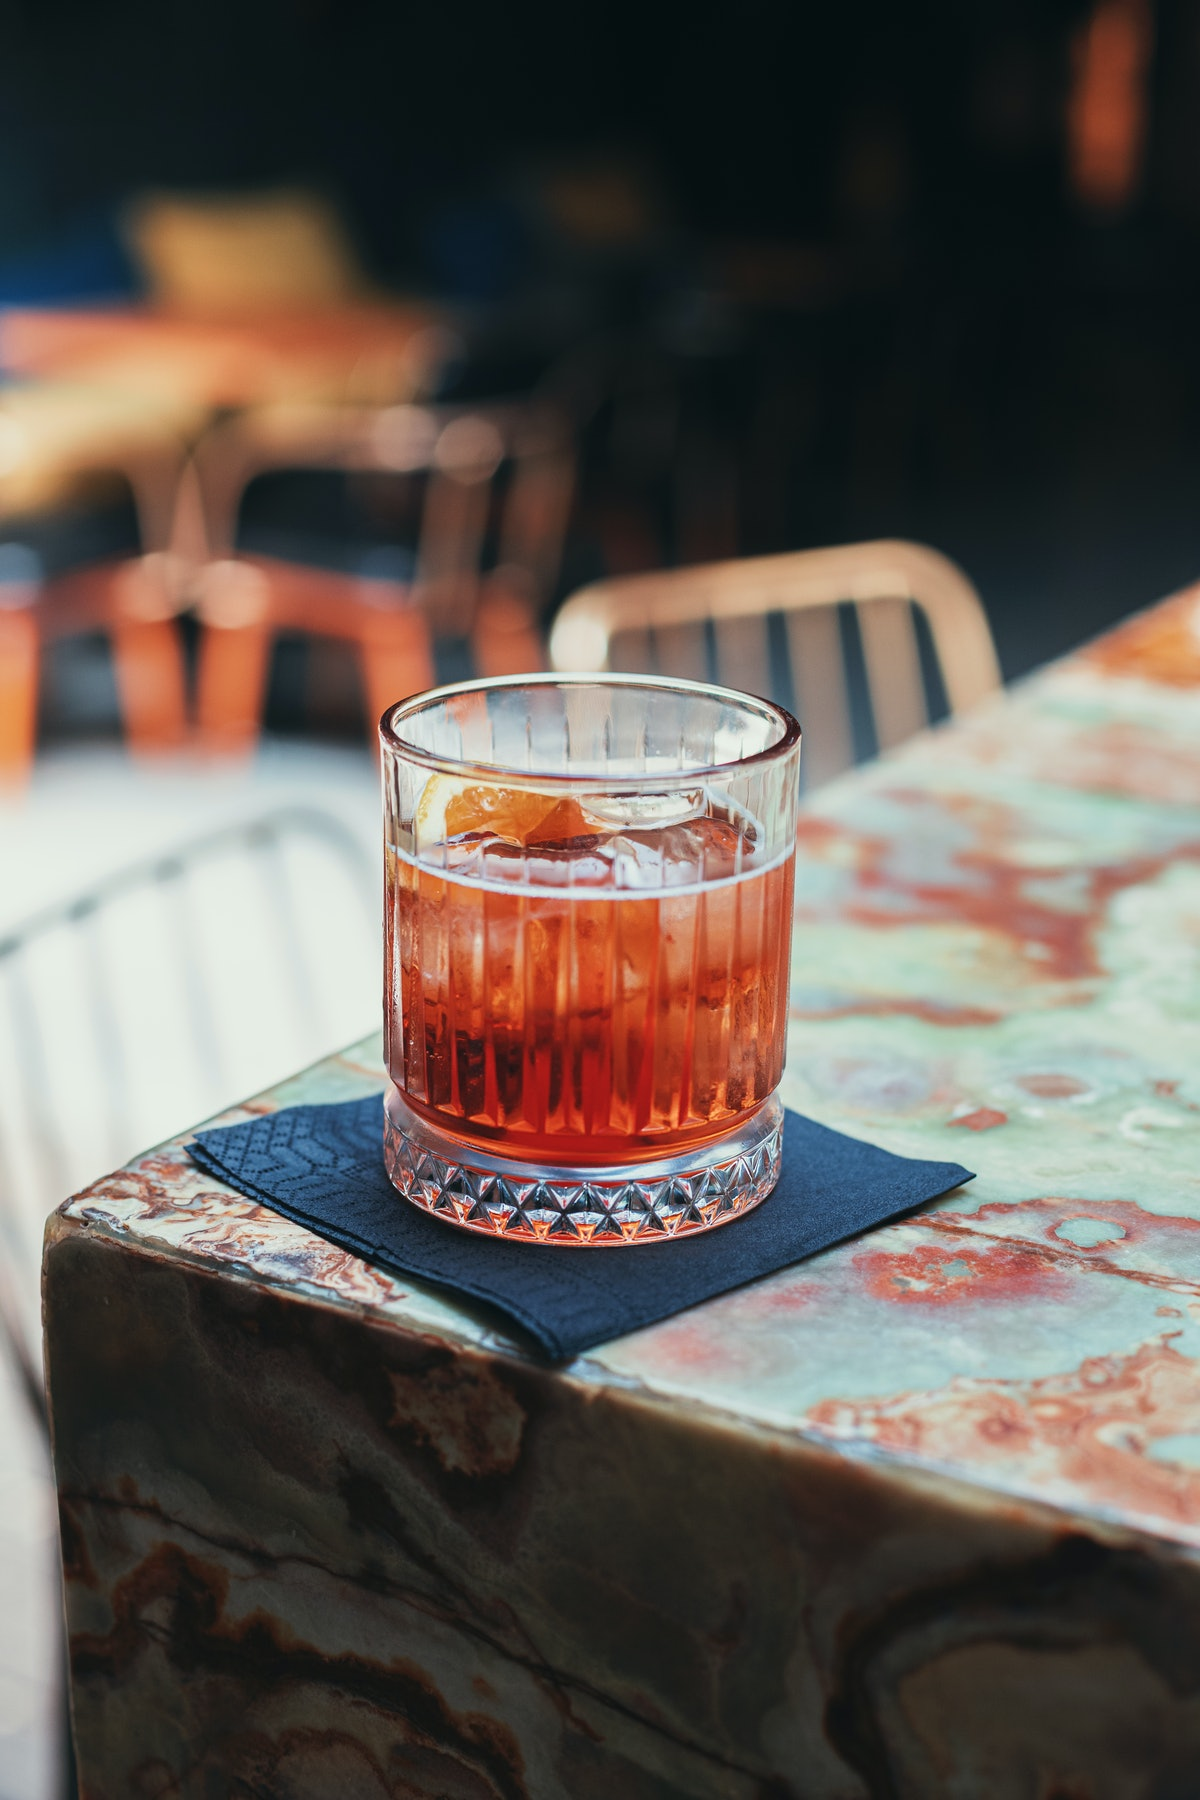 A negroni is a great aperitif cocktail to drink before dinner